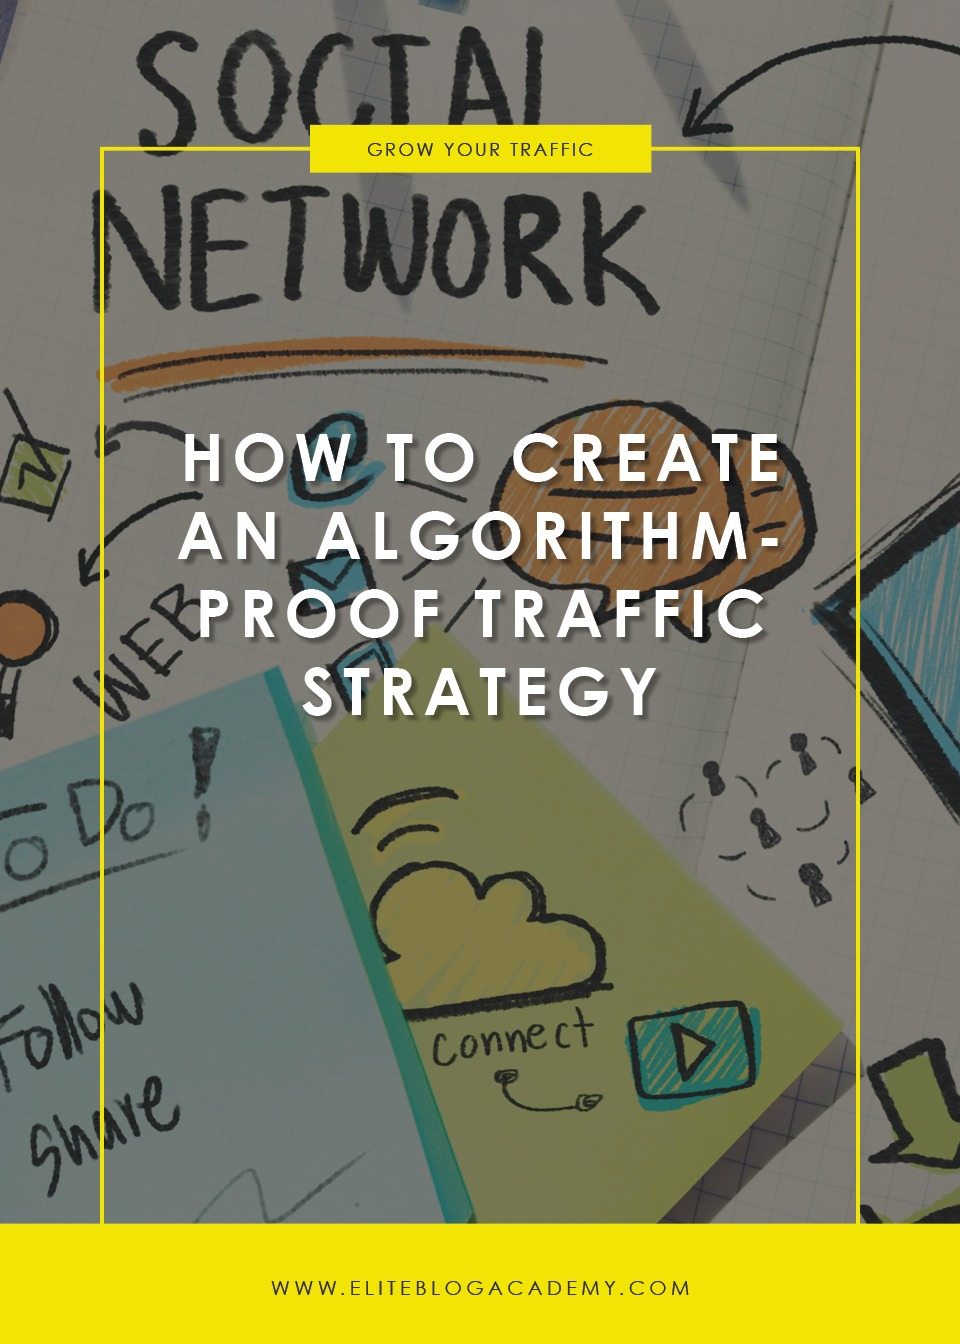 How to Create an Algorithm-Proof Traffic Strategy | Elite Blog Academy | How to Grow Your Blog Traffic | How to Make Money Blogging | Blogging 101 | Work from Home | Blogging Business | How to Build a Profitable Blog